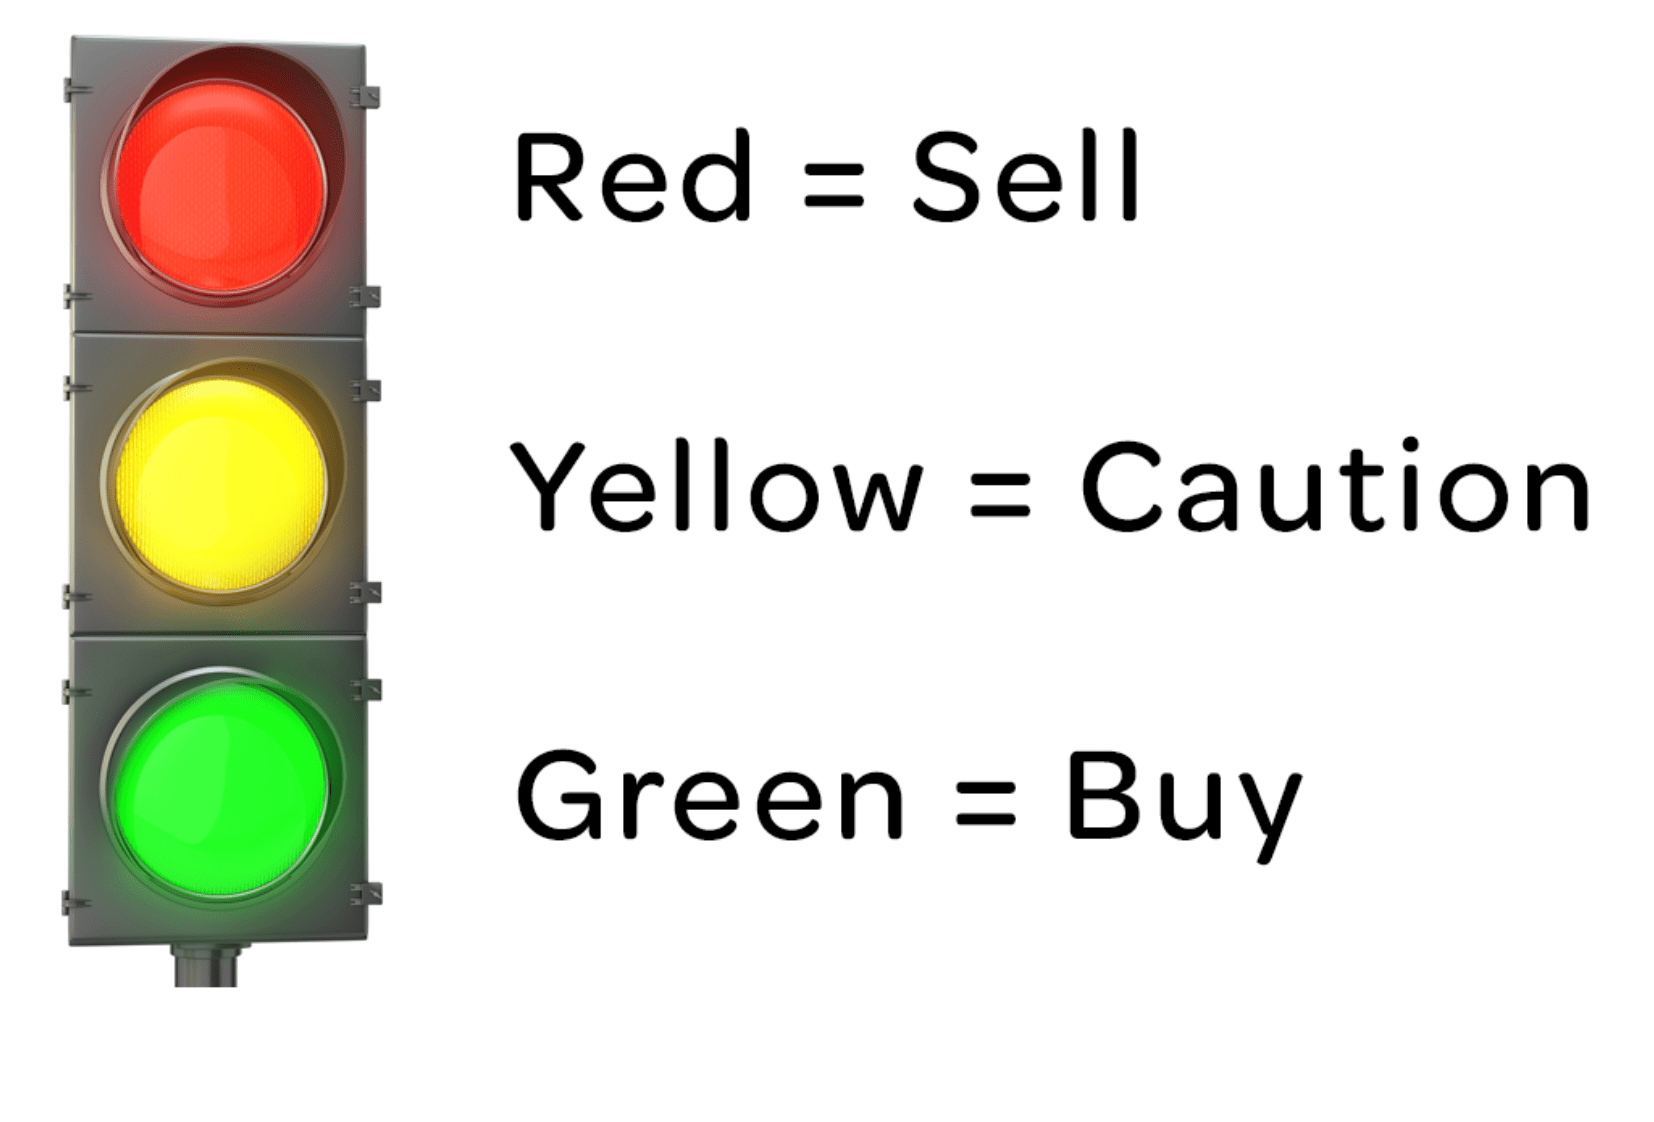 tradestops traffic light stock buying image